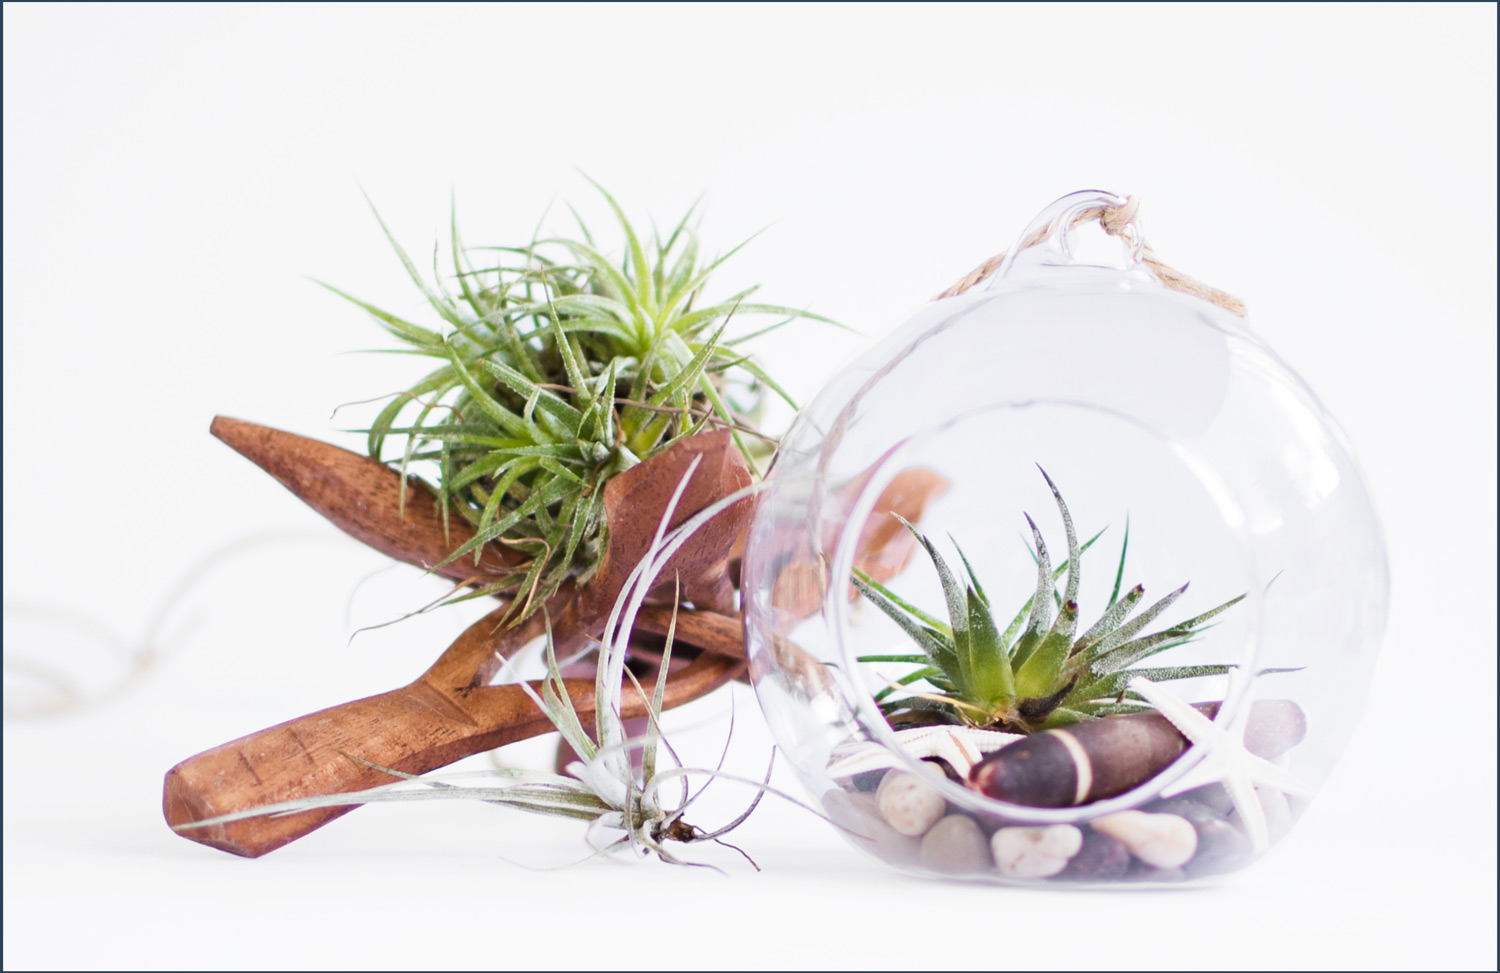 styled image of air plants in a glass terrarium and driftwood